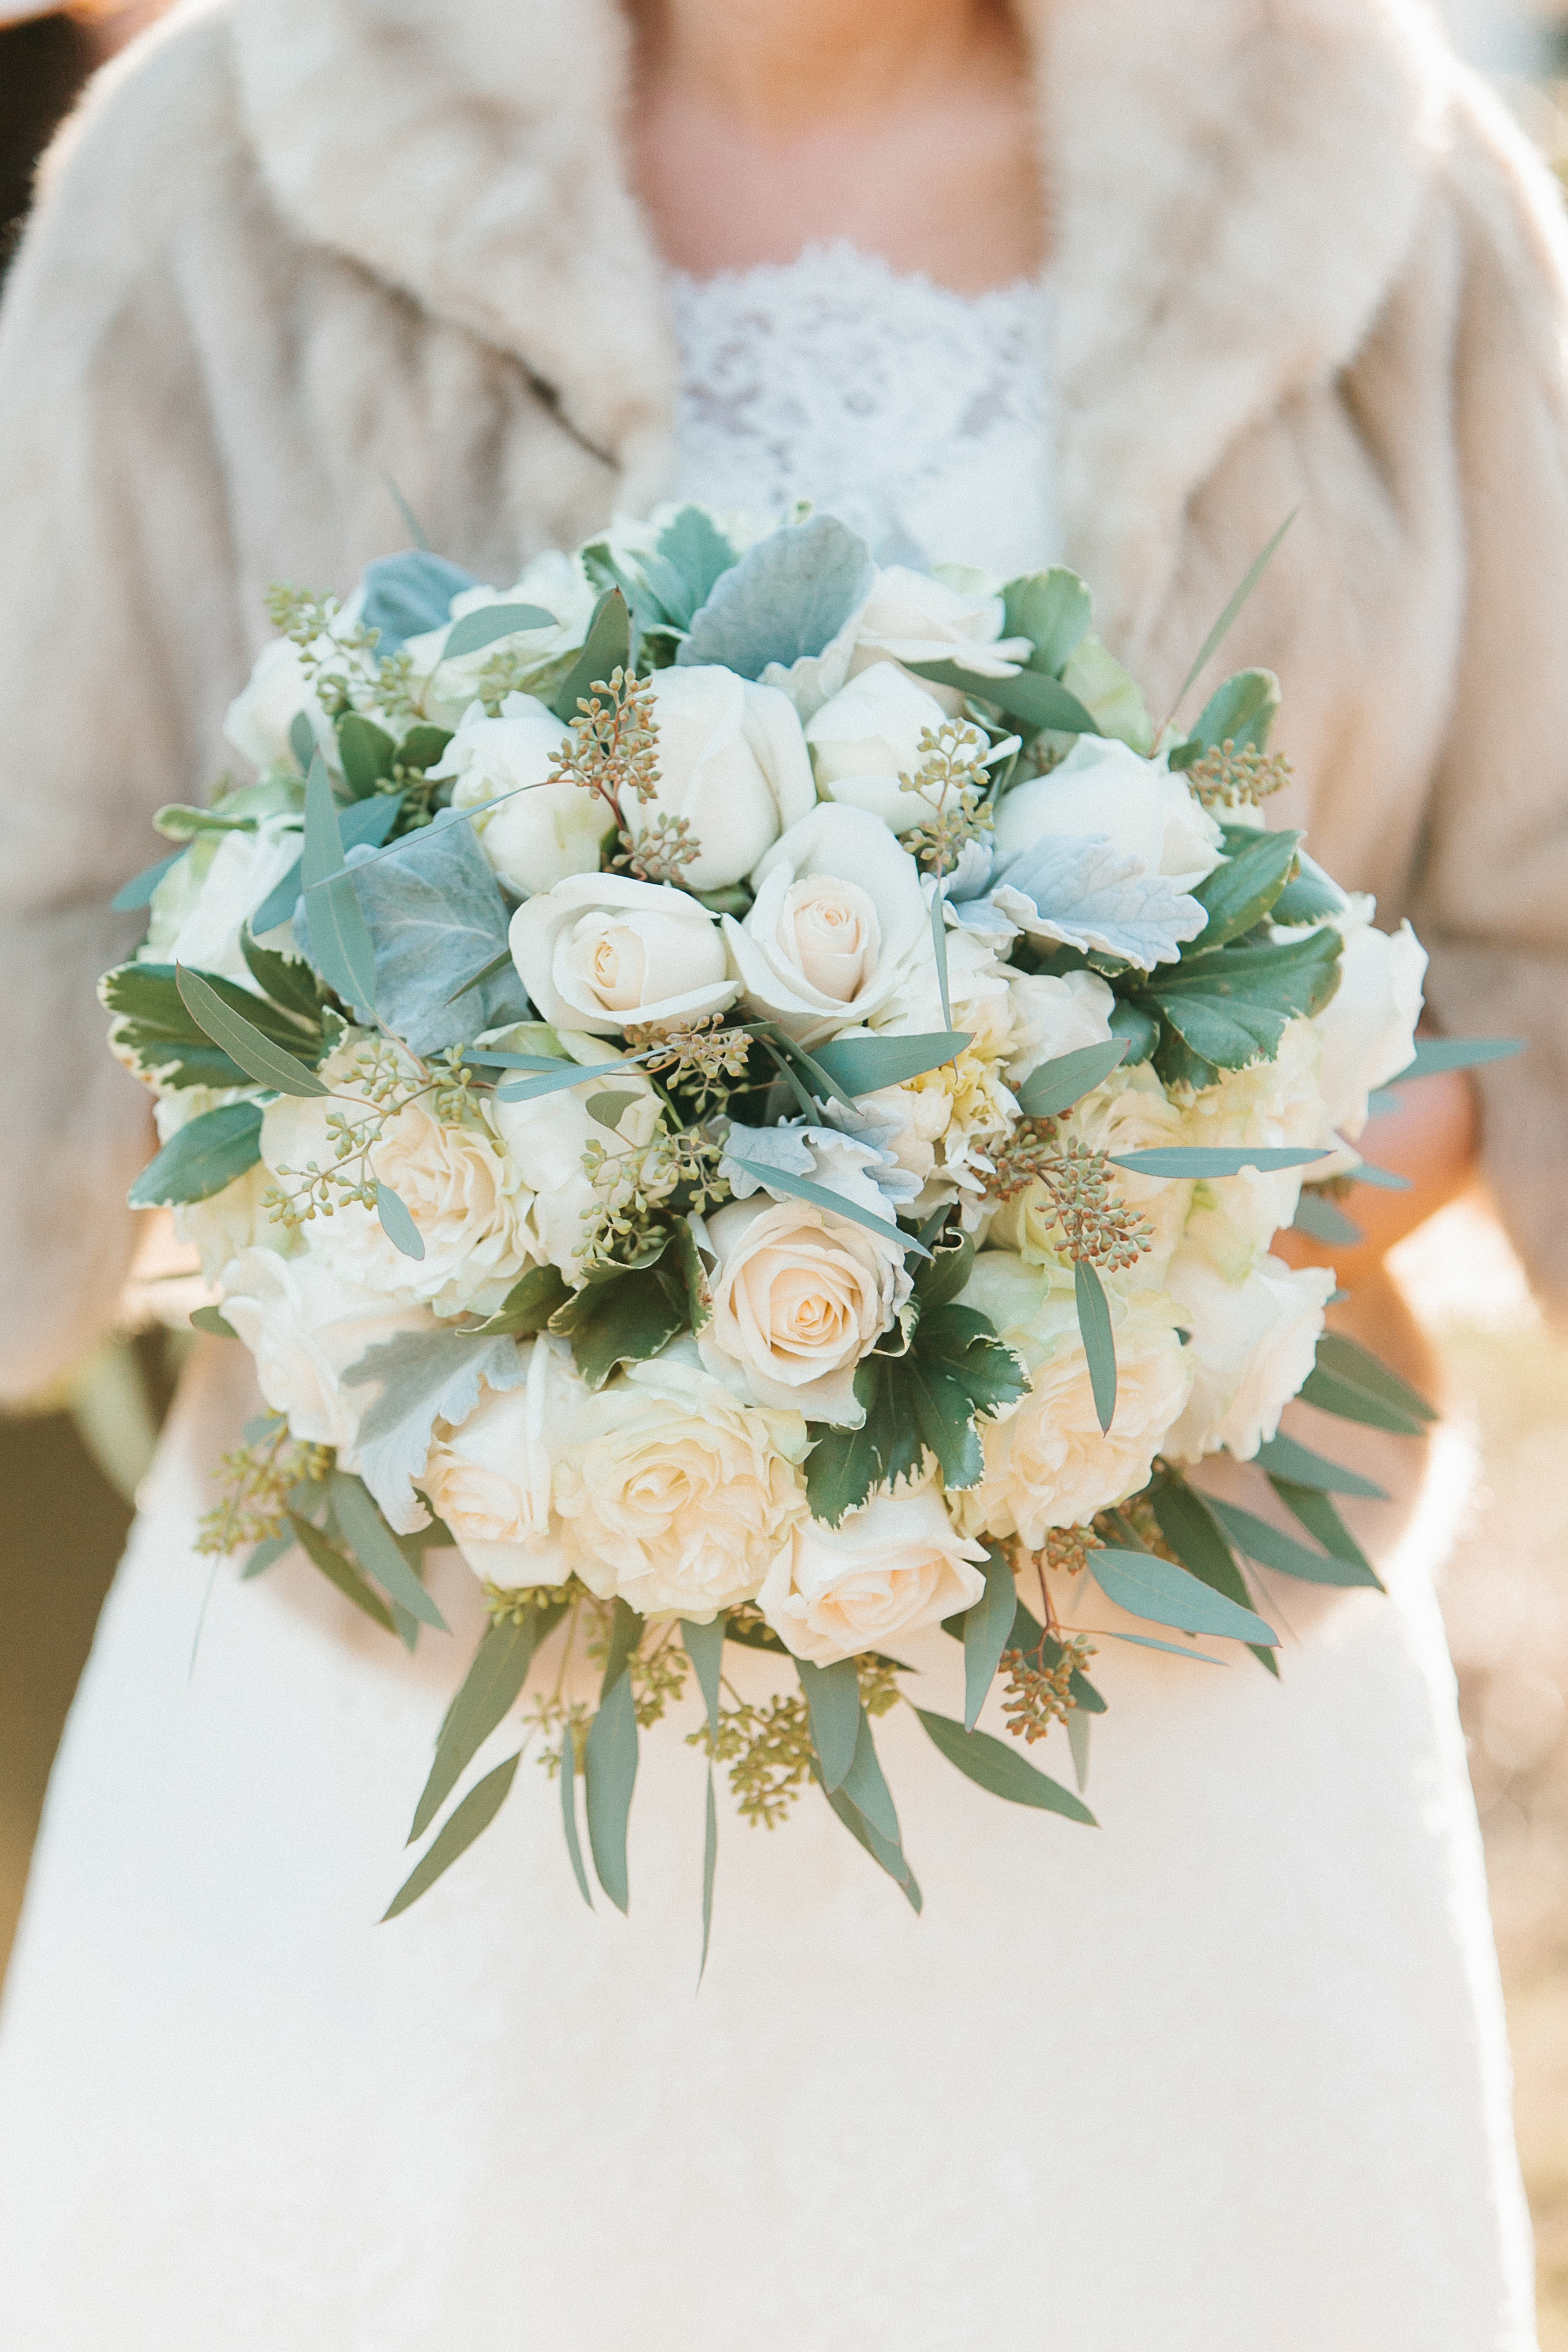 White rose, eucalyptus and dusty miller wedding bouquet